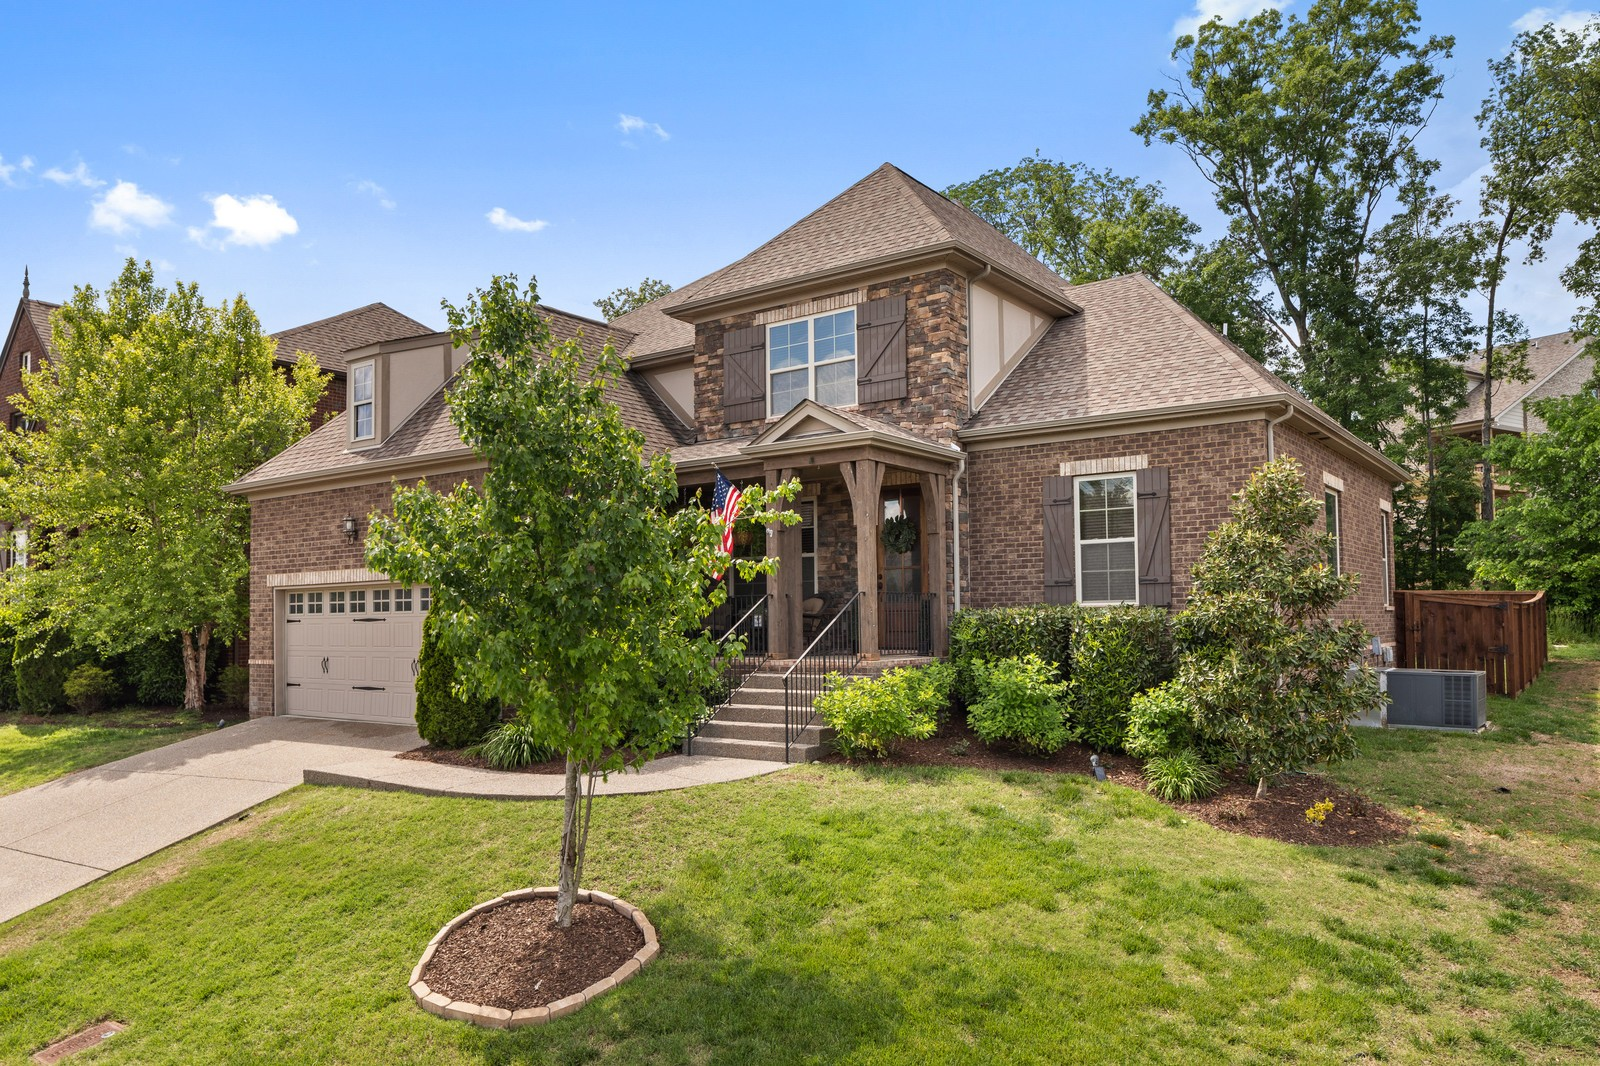 5304 Highland Place Way, Hermitage, TN 37076 - Hermitage, TN real estate listing